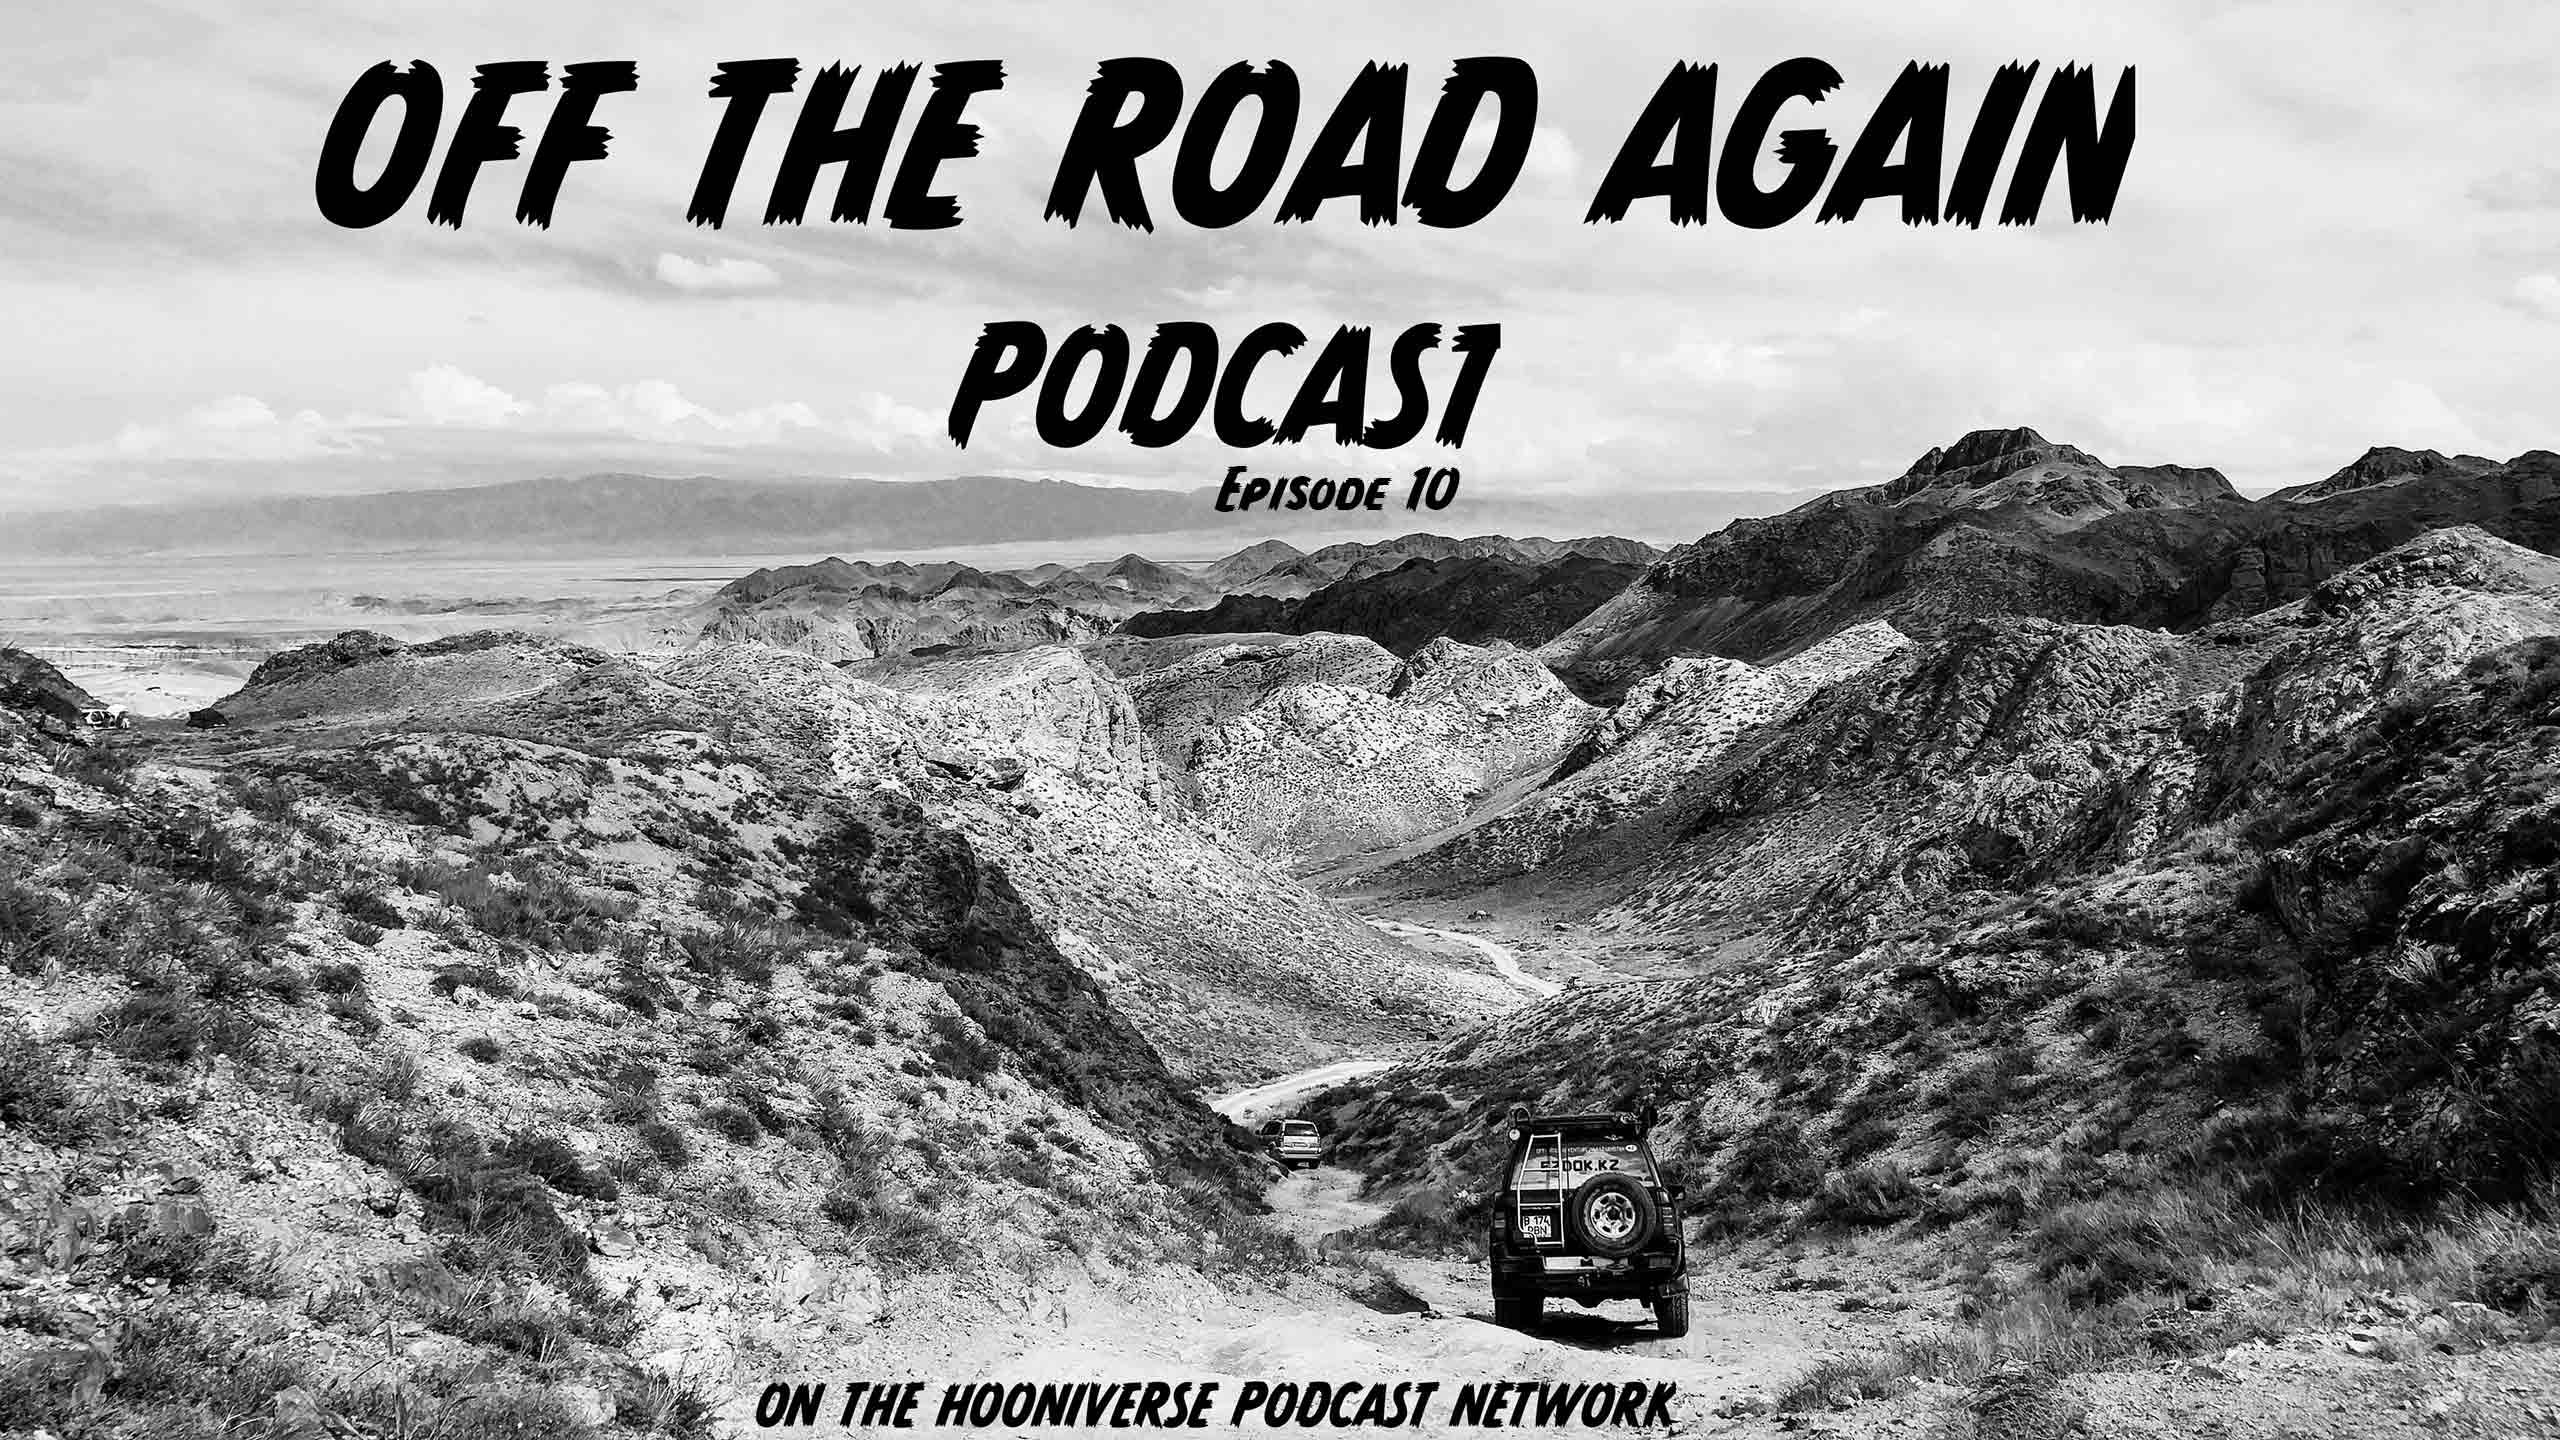 Off the Road Again Podcast - Episode 10